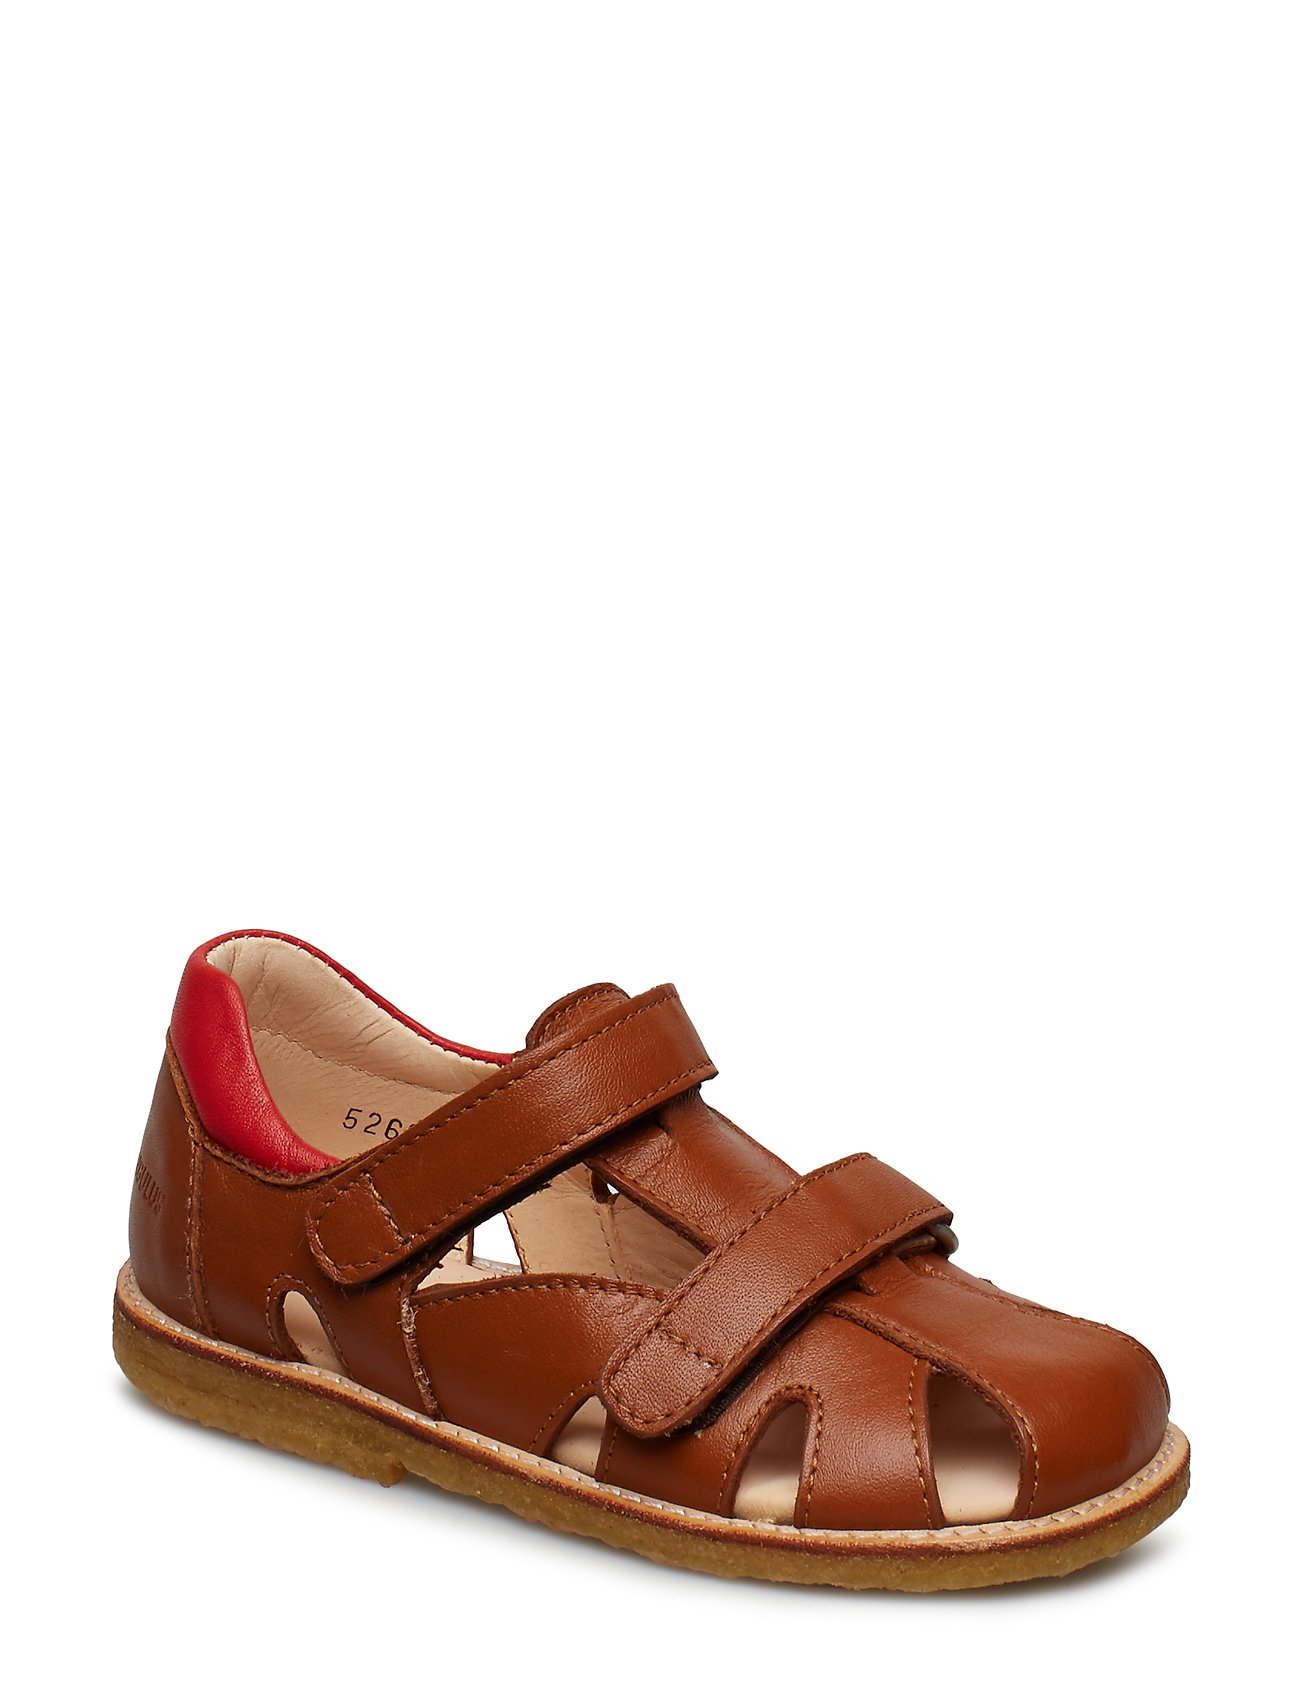 ANGULUS Sandals - flat - 1431/1565 COGNAC/RED